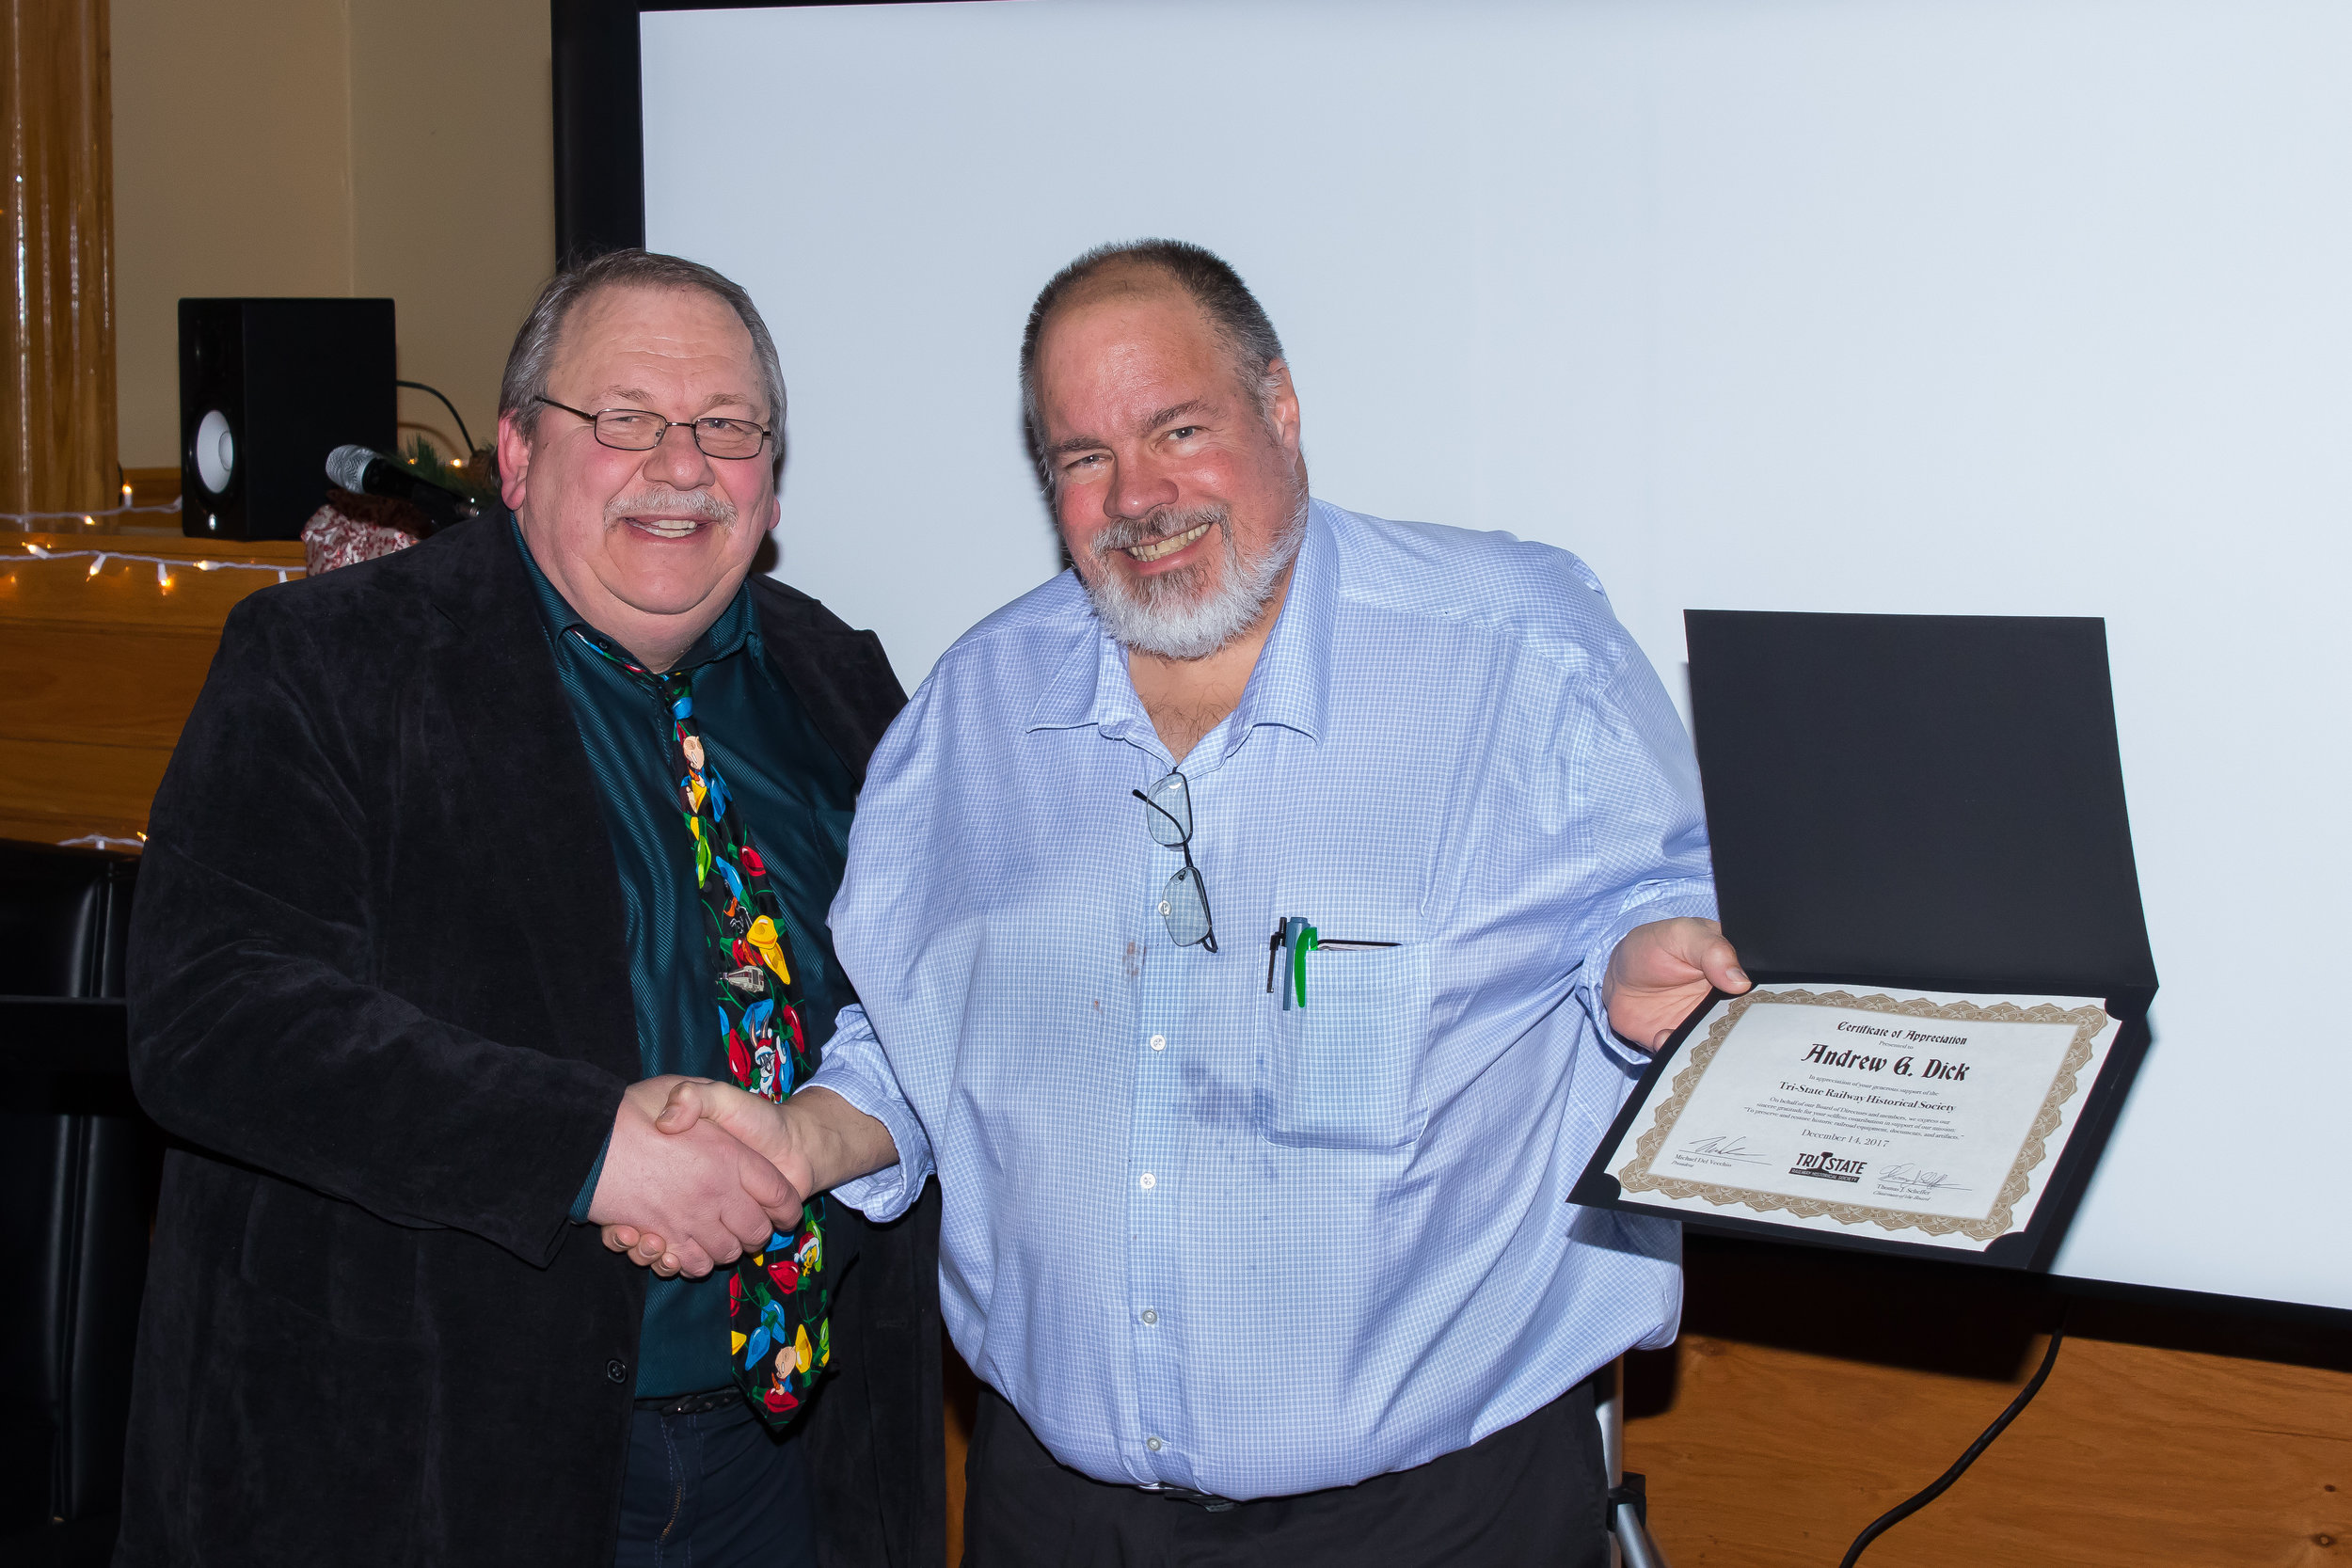 Member Andrew Dick receives a donor Certificate of Appreciation